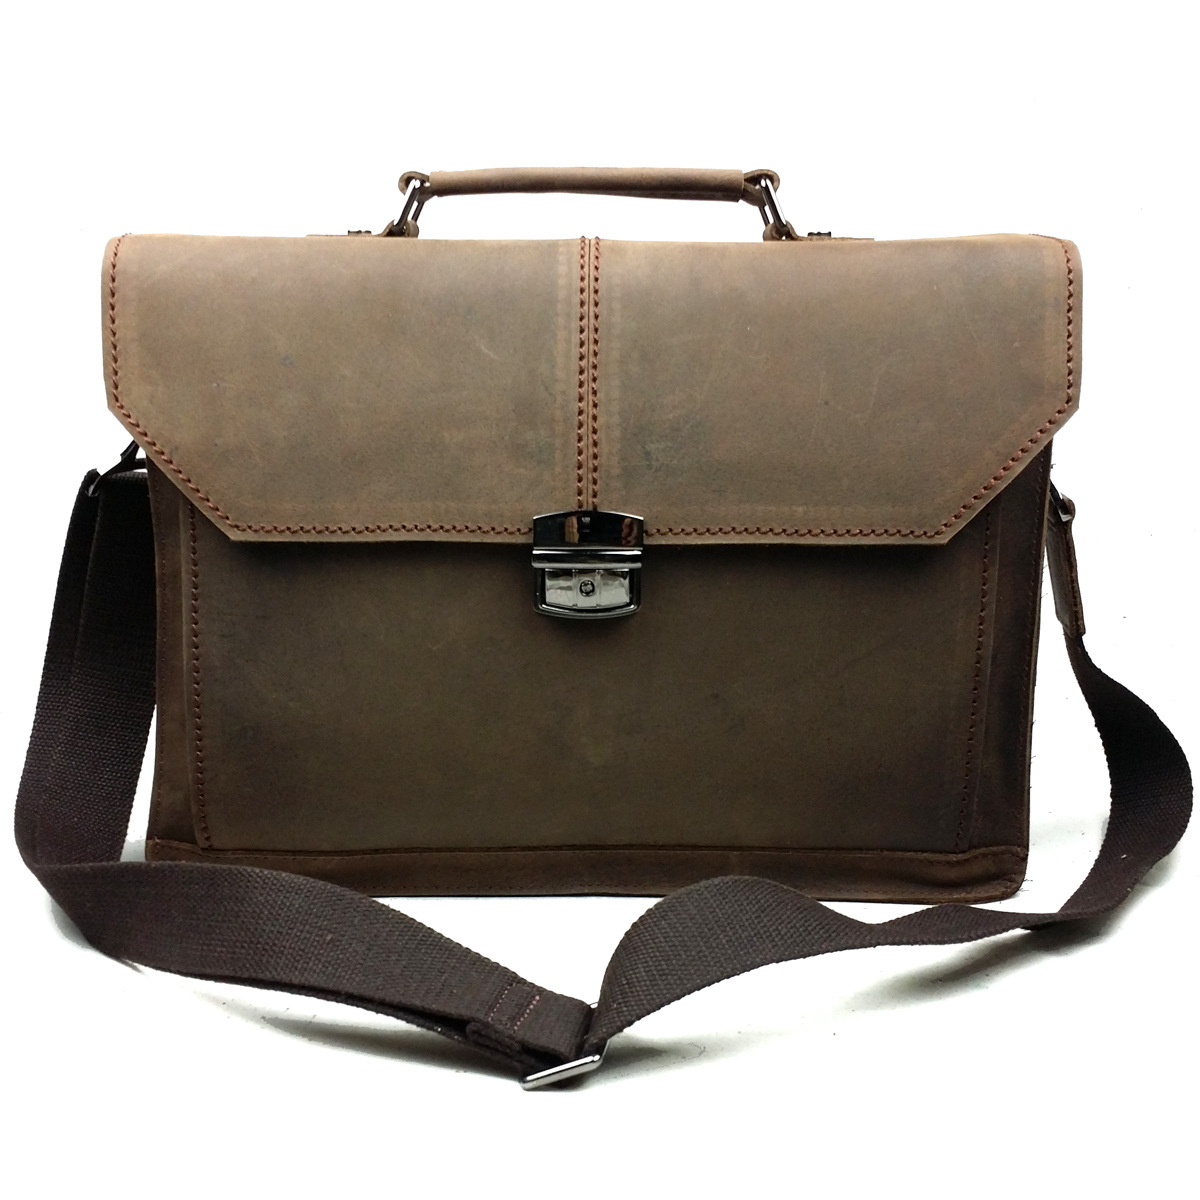 coachfactory outlet om07  leather work bags for men